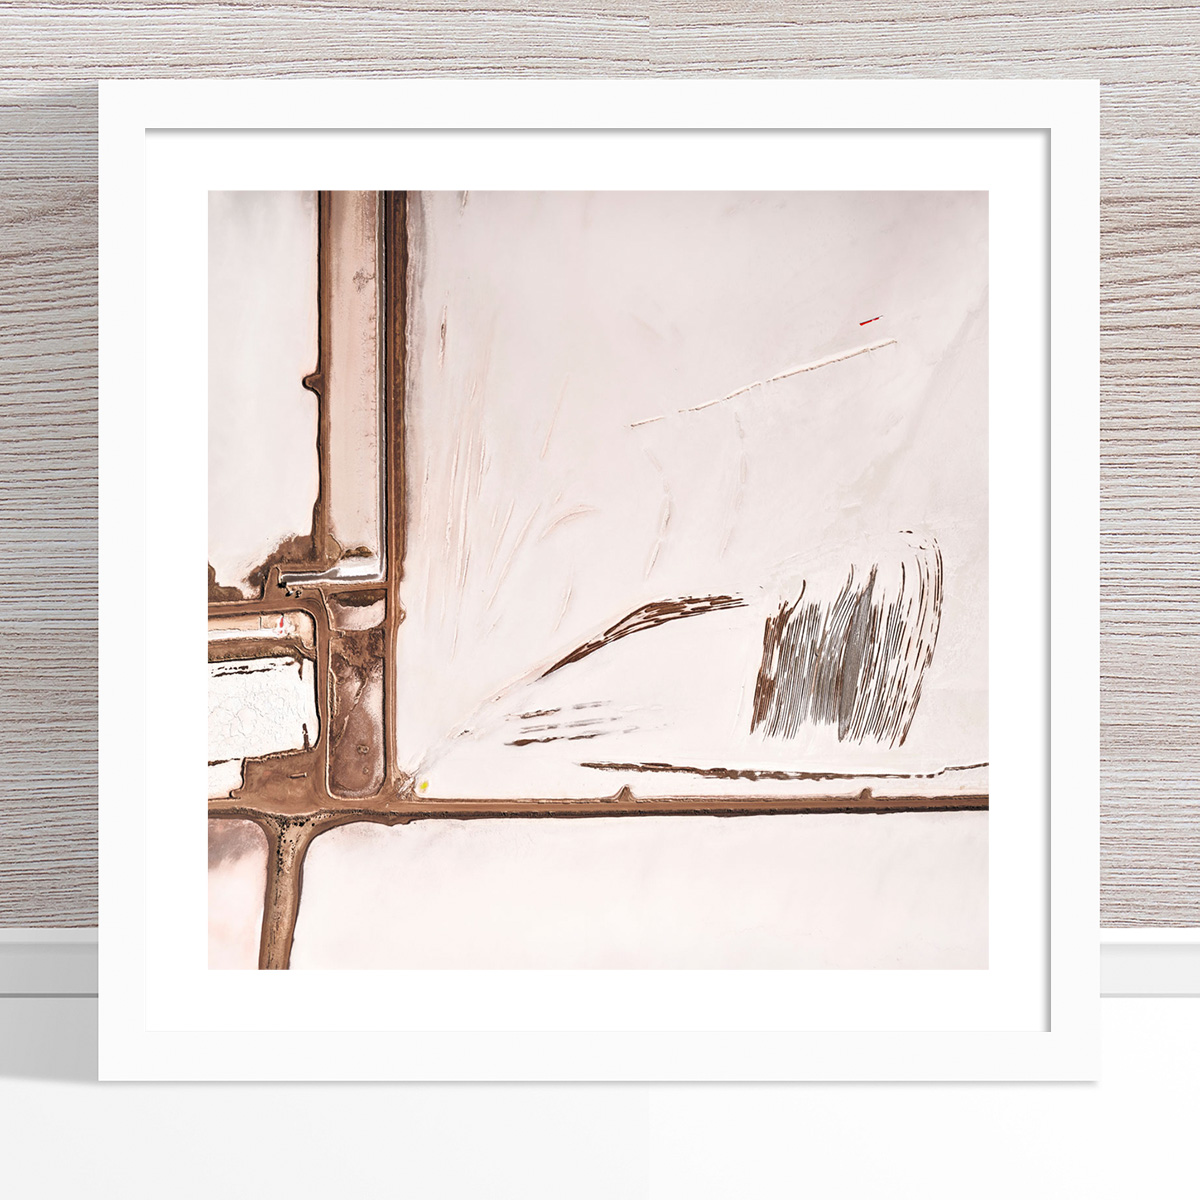 Chris Saunders - 'Aerial Salt 059' White Frame